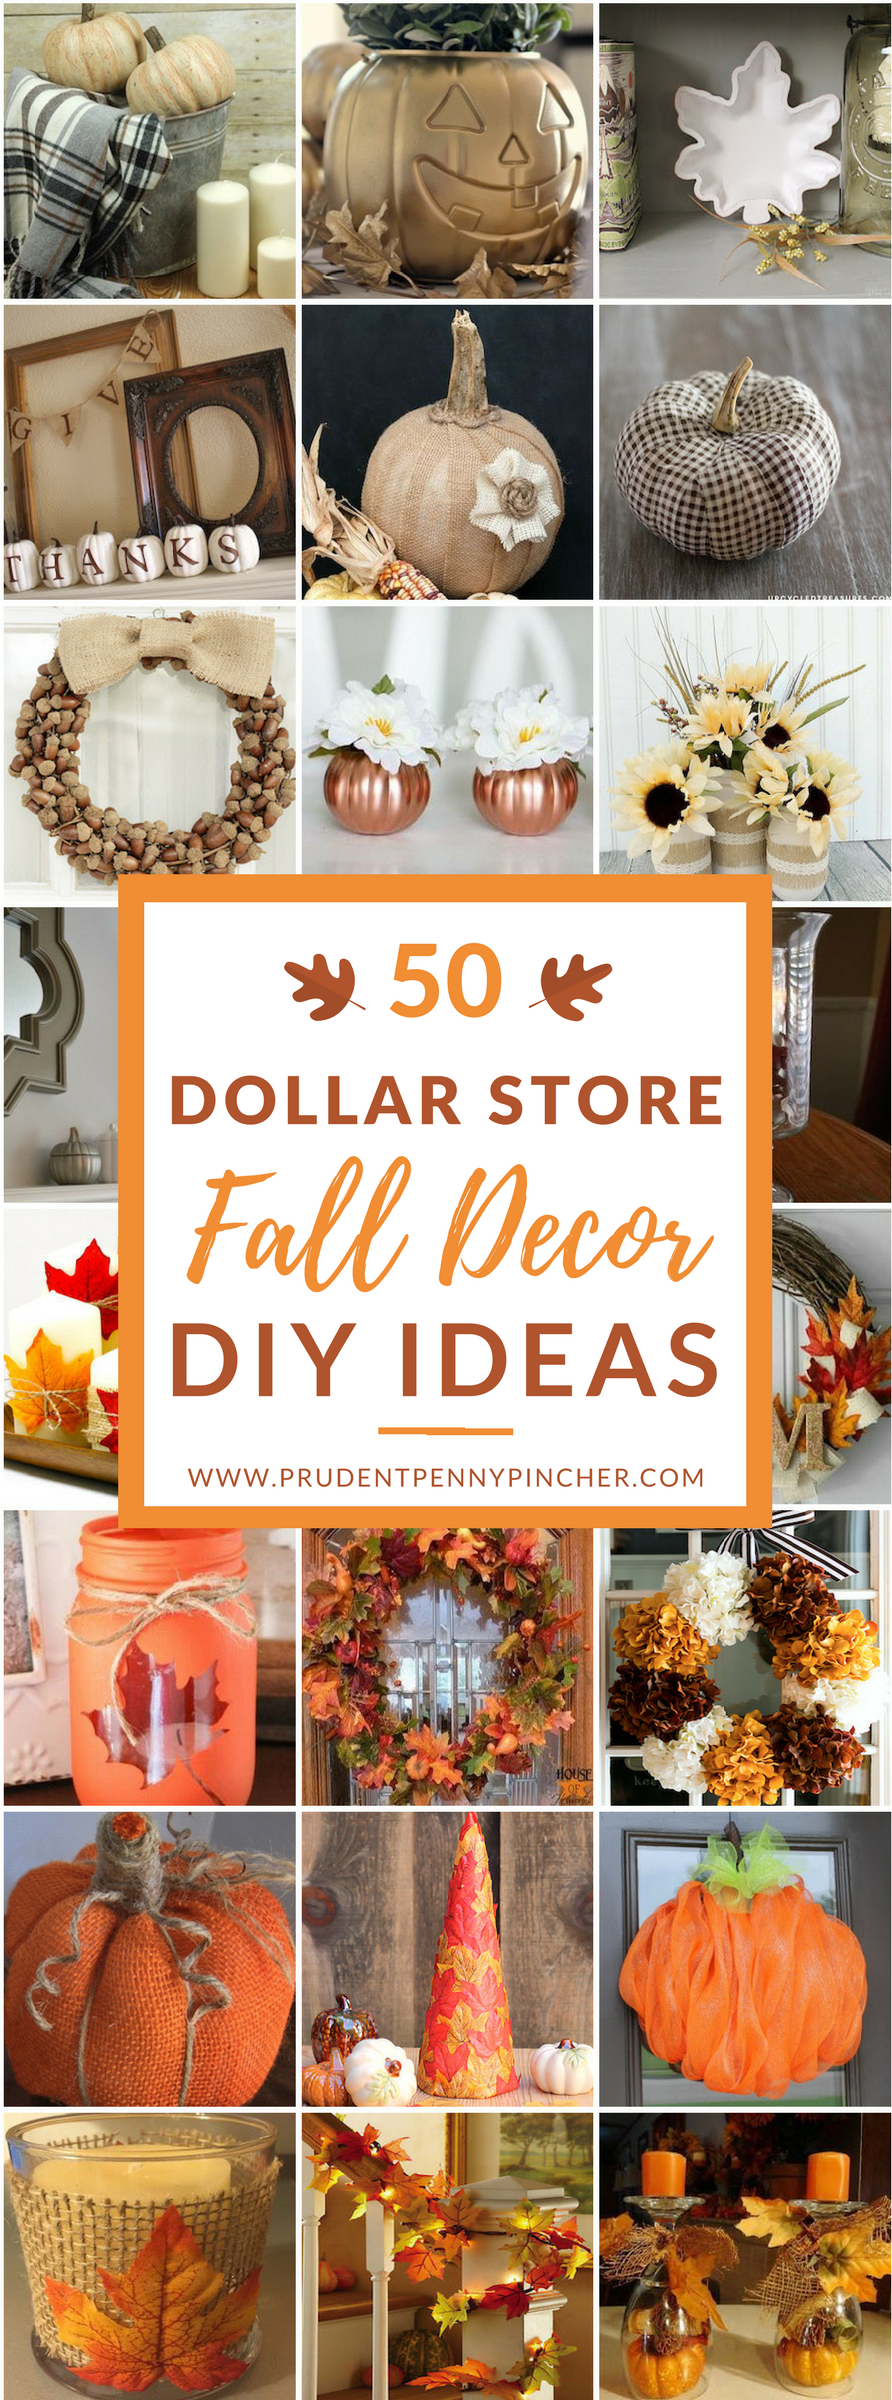 Best 50 Dollar Store Fall Decor Diy Ideas Prudent Penny Pincher This Month